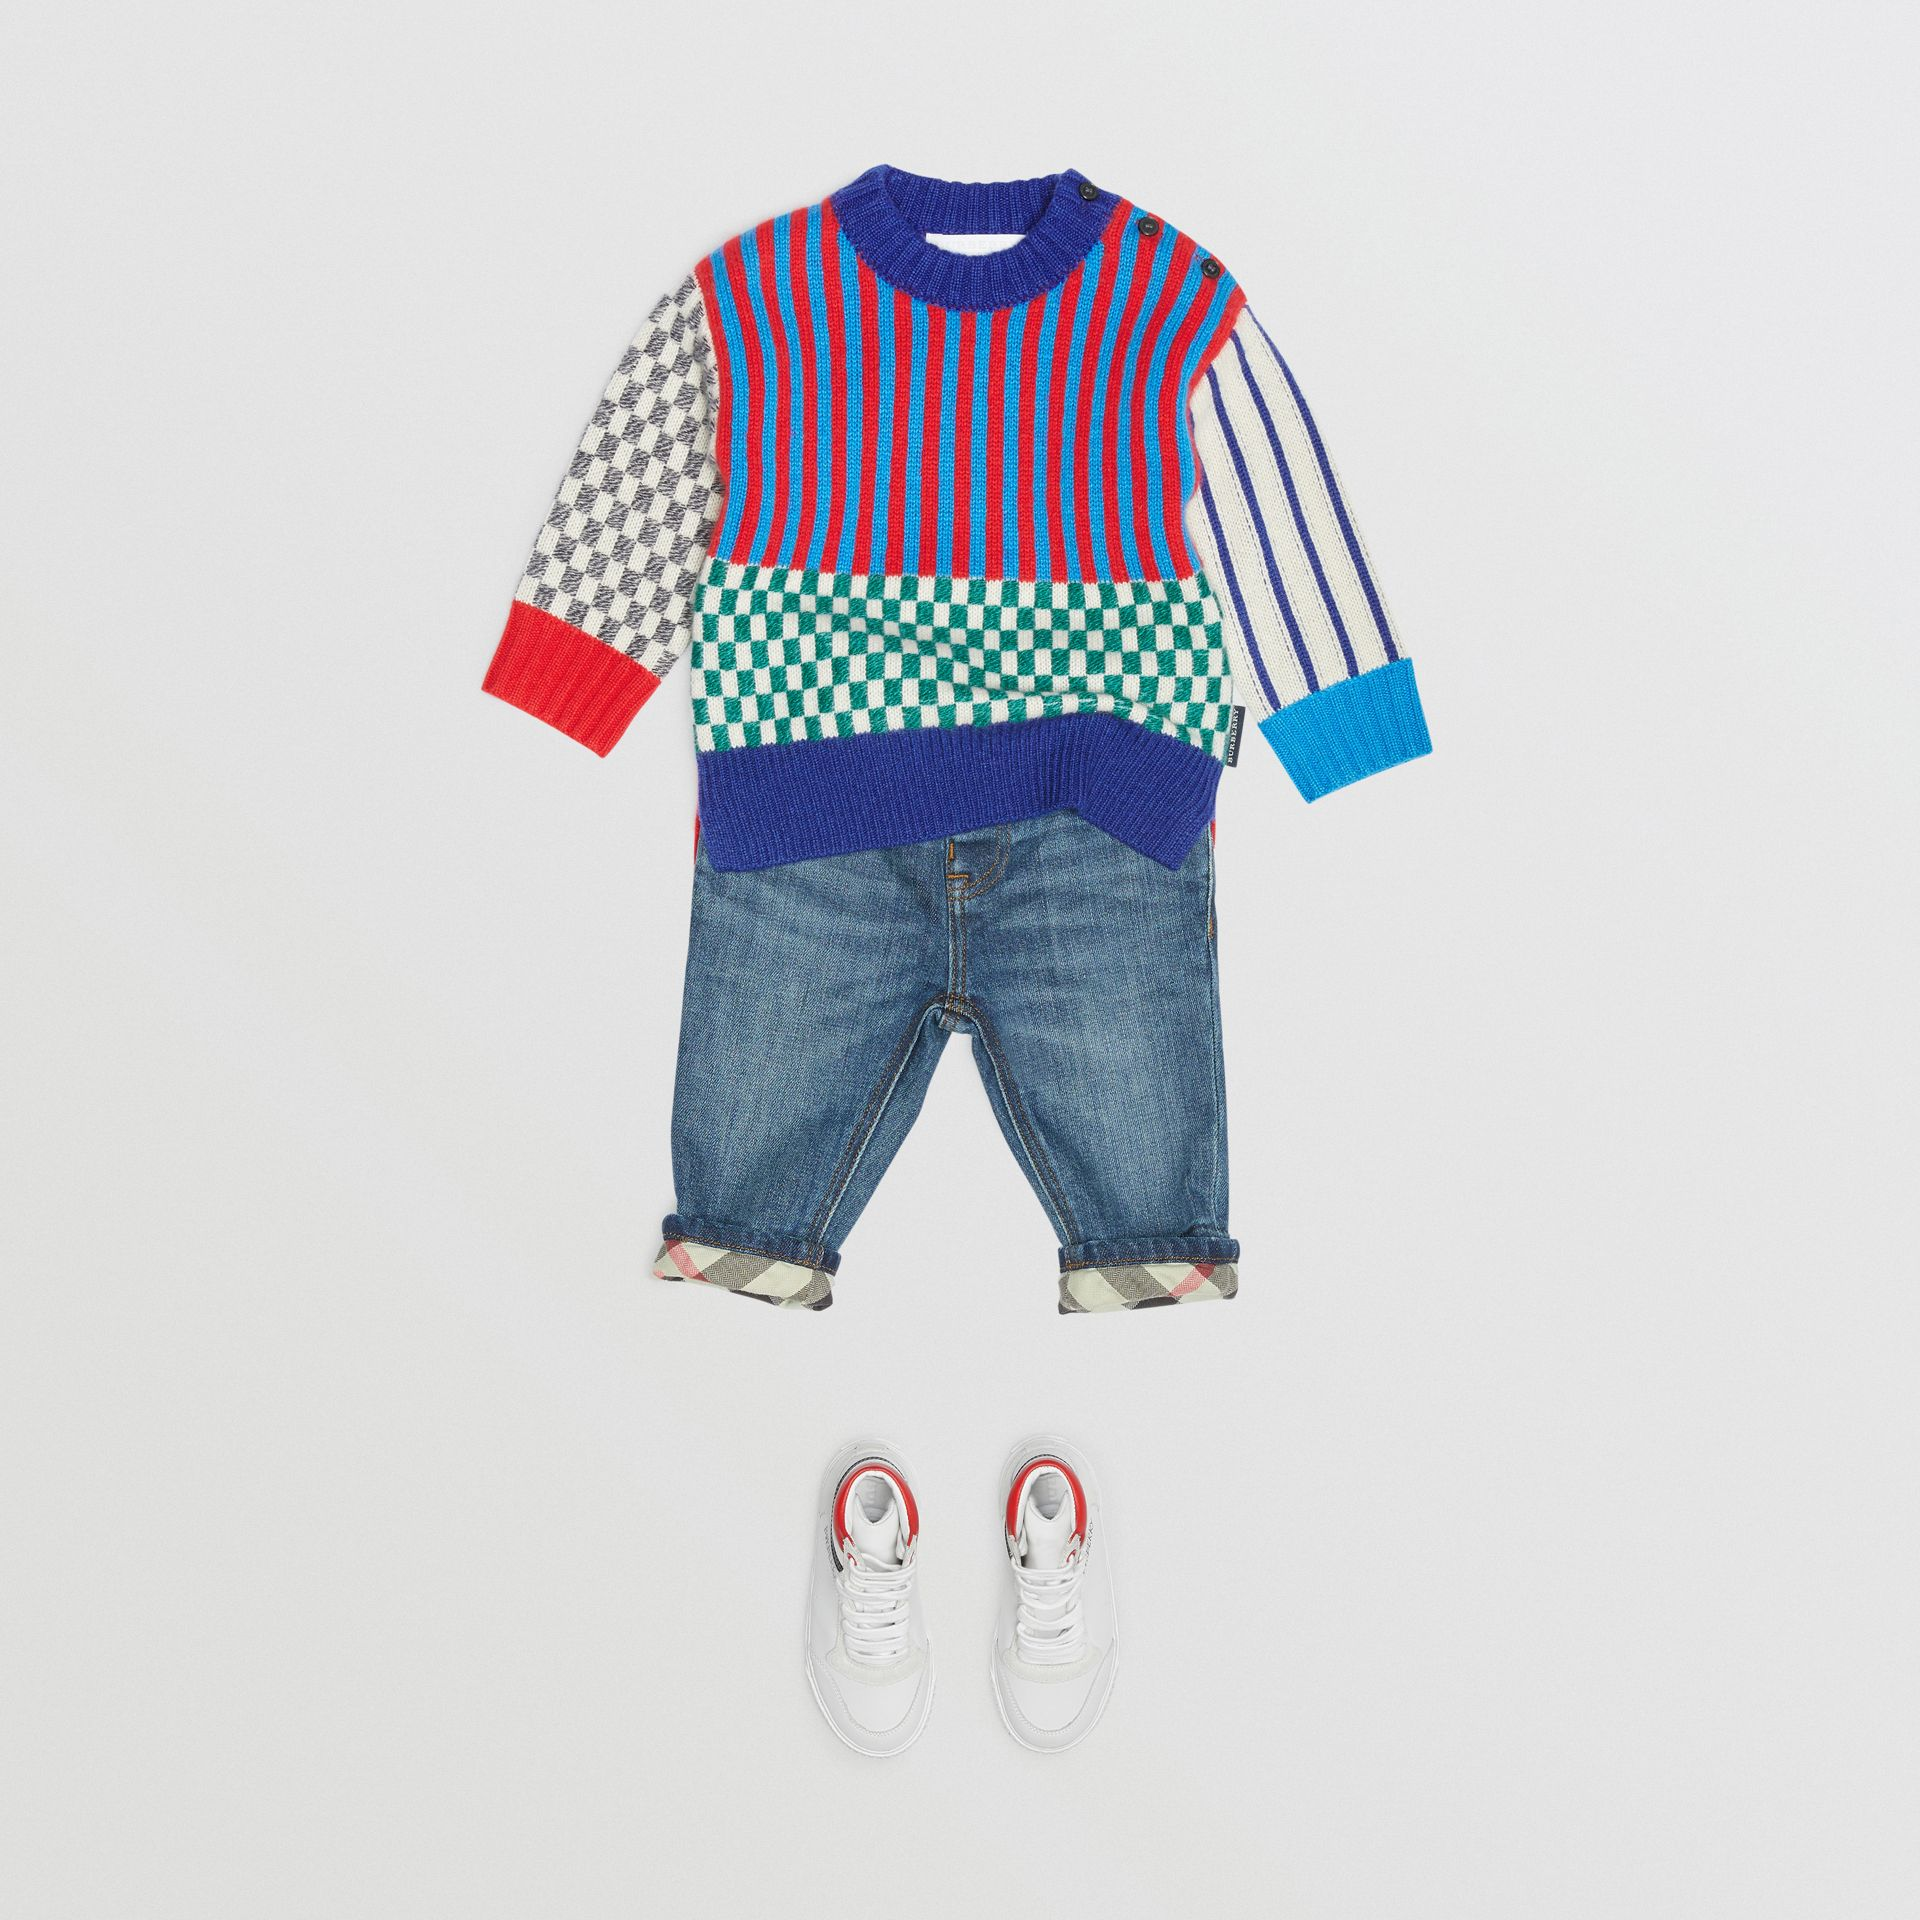 Graphic Cashmere Jacquard Sweater in Multicolour - Children | Burberry - gallery image 2